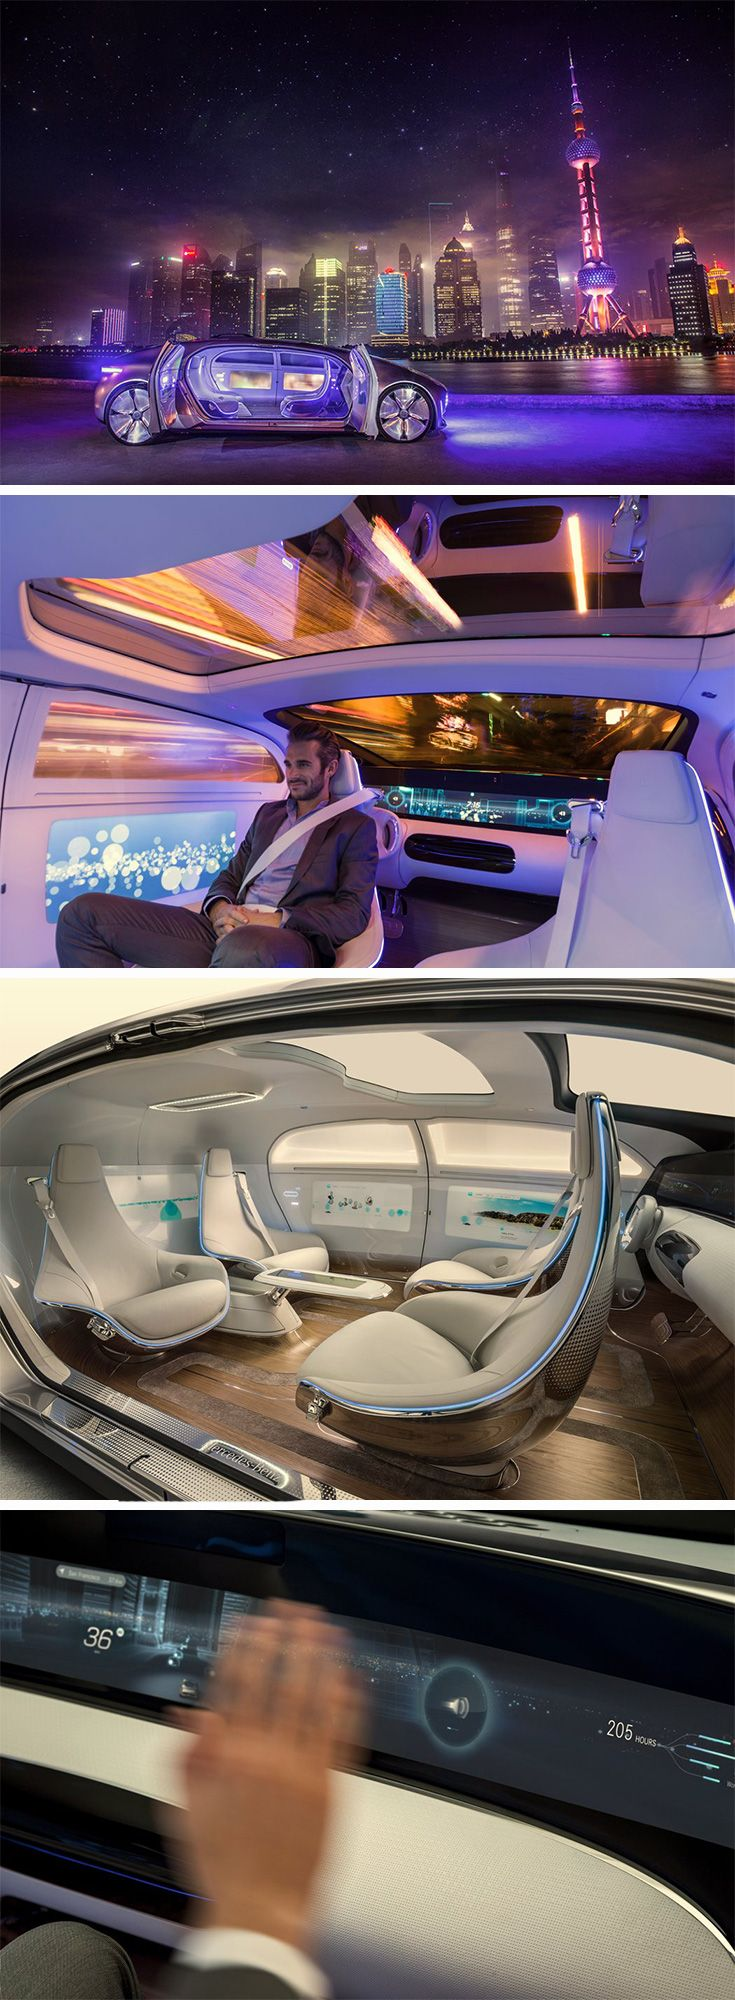 Mercedes-Benz hopes to notch up the self-driving car experience with their F 015 Luxury in Motion concept car.